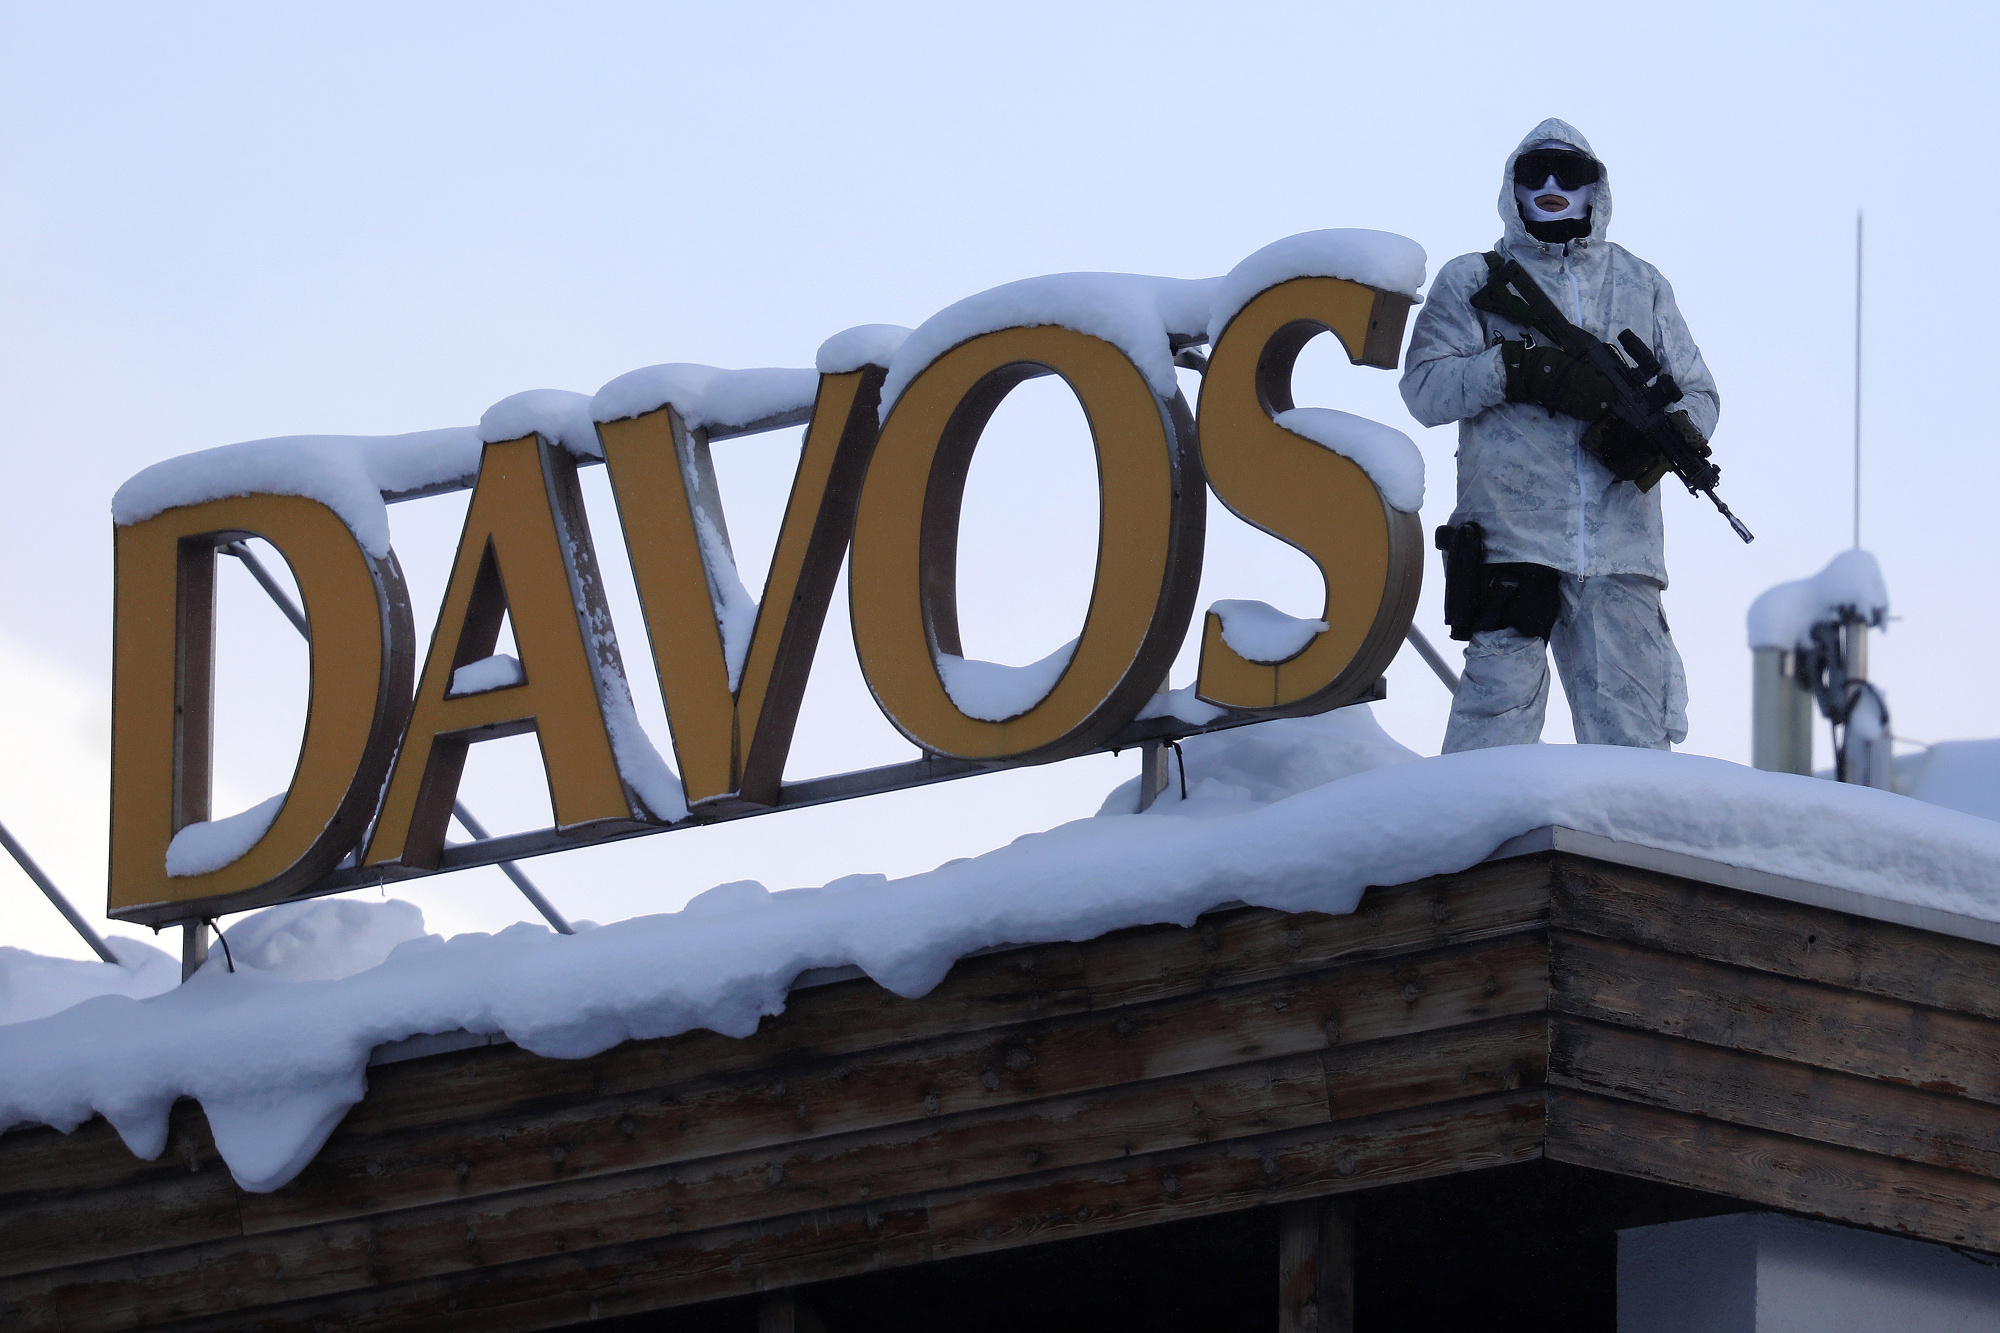 Davos Votes on WEF Police Bill With Some Saying They're Fed Up - Bloomberg